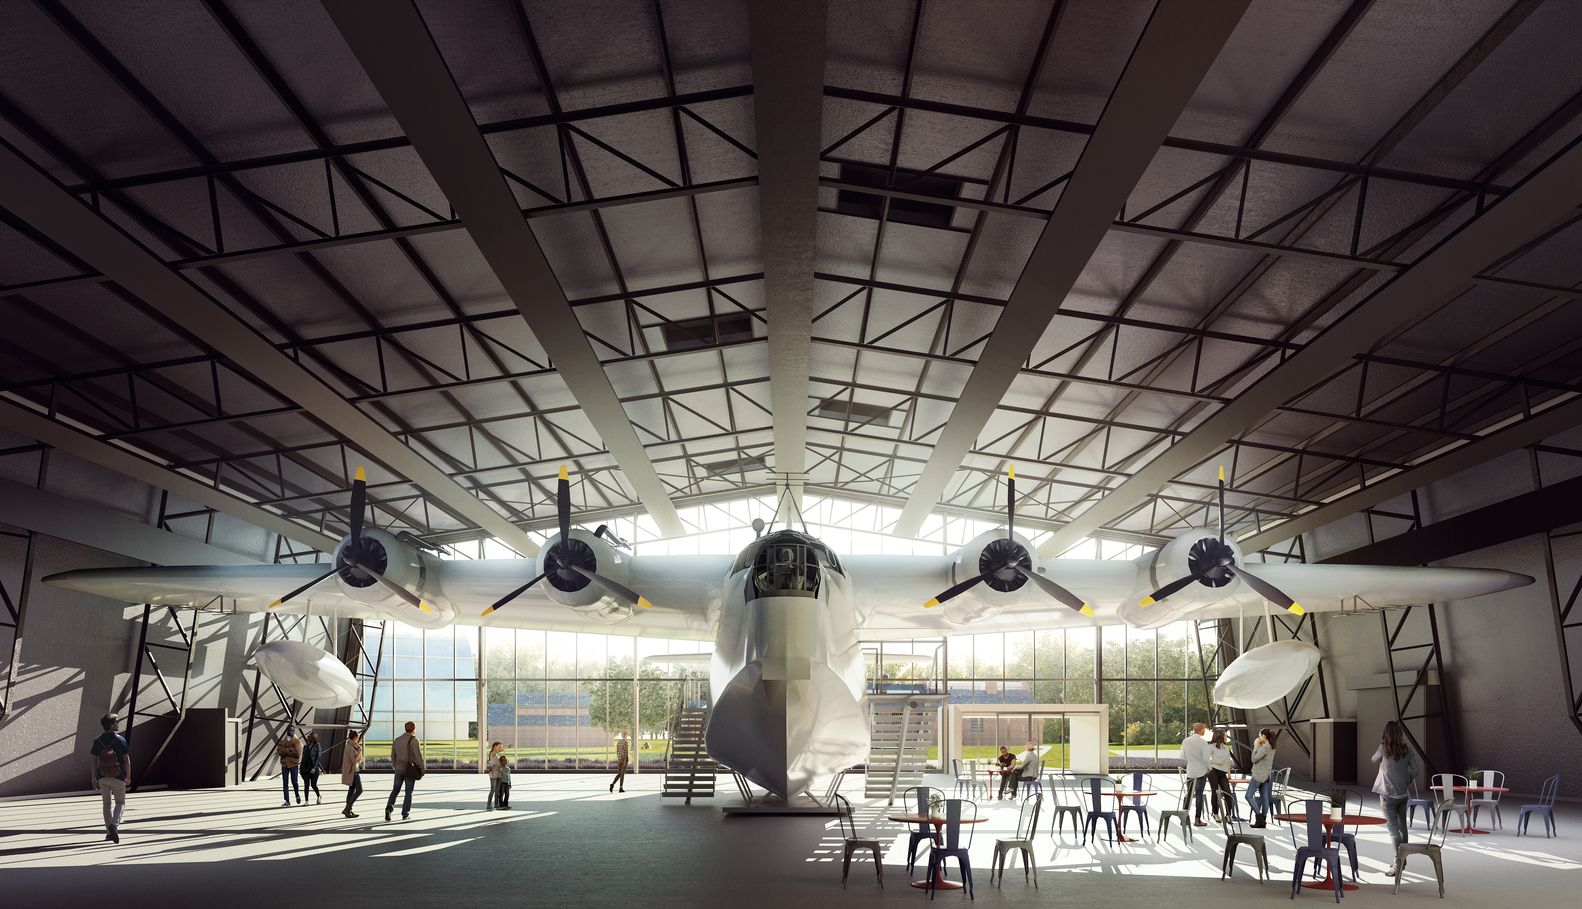 Gallery of Nex Architecture Unveils Design for New Royal Air Force Museum in London - 13